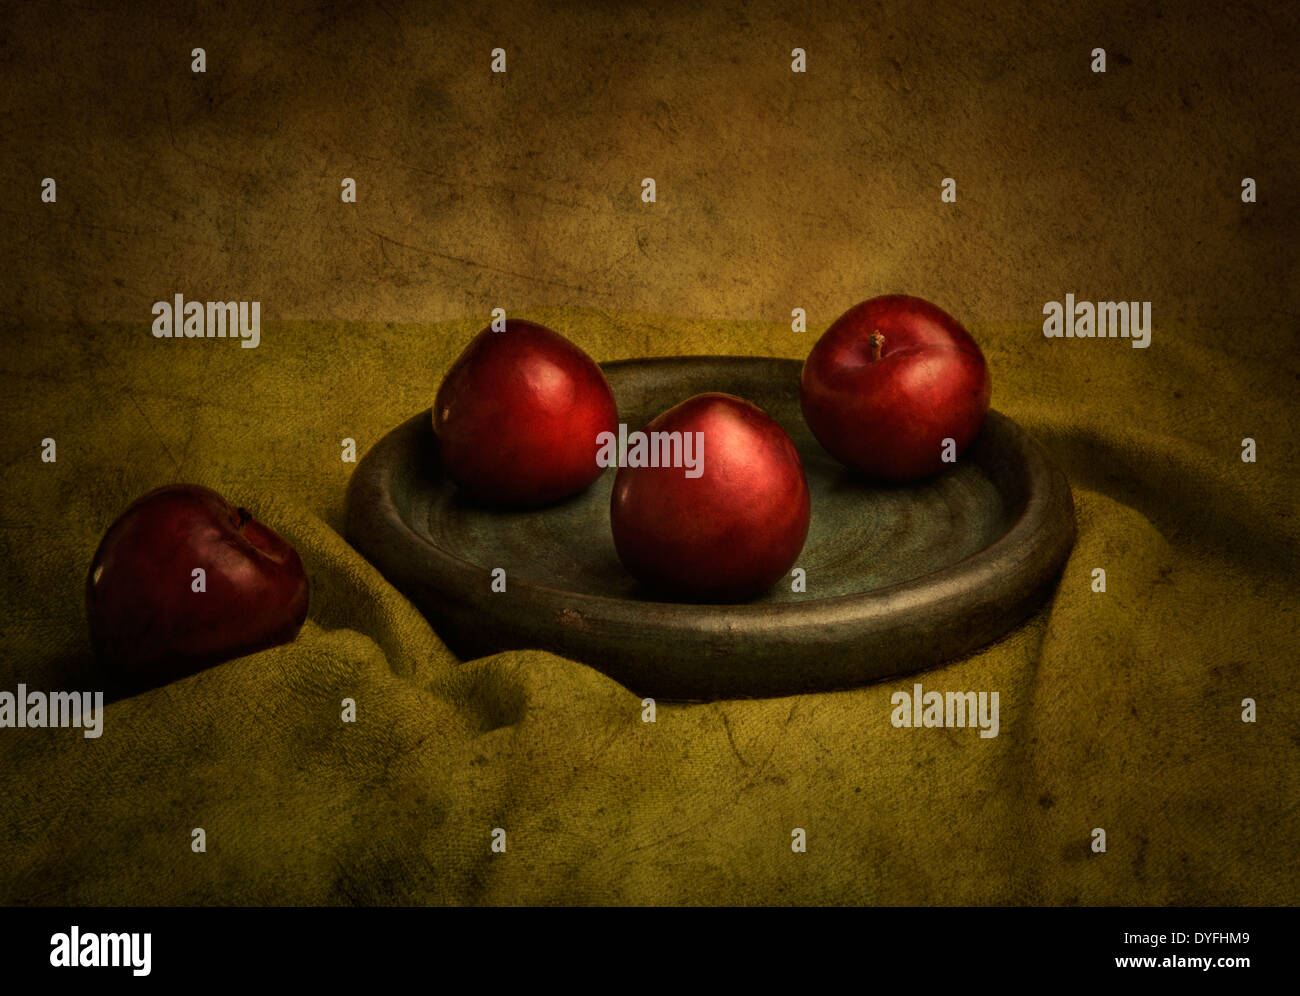 Plums with texture overlay - Stock Image